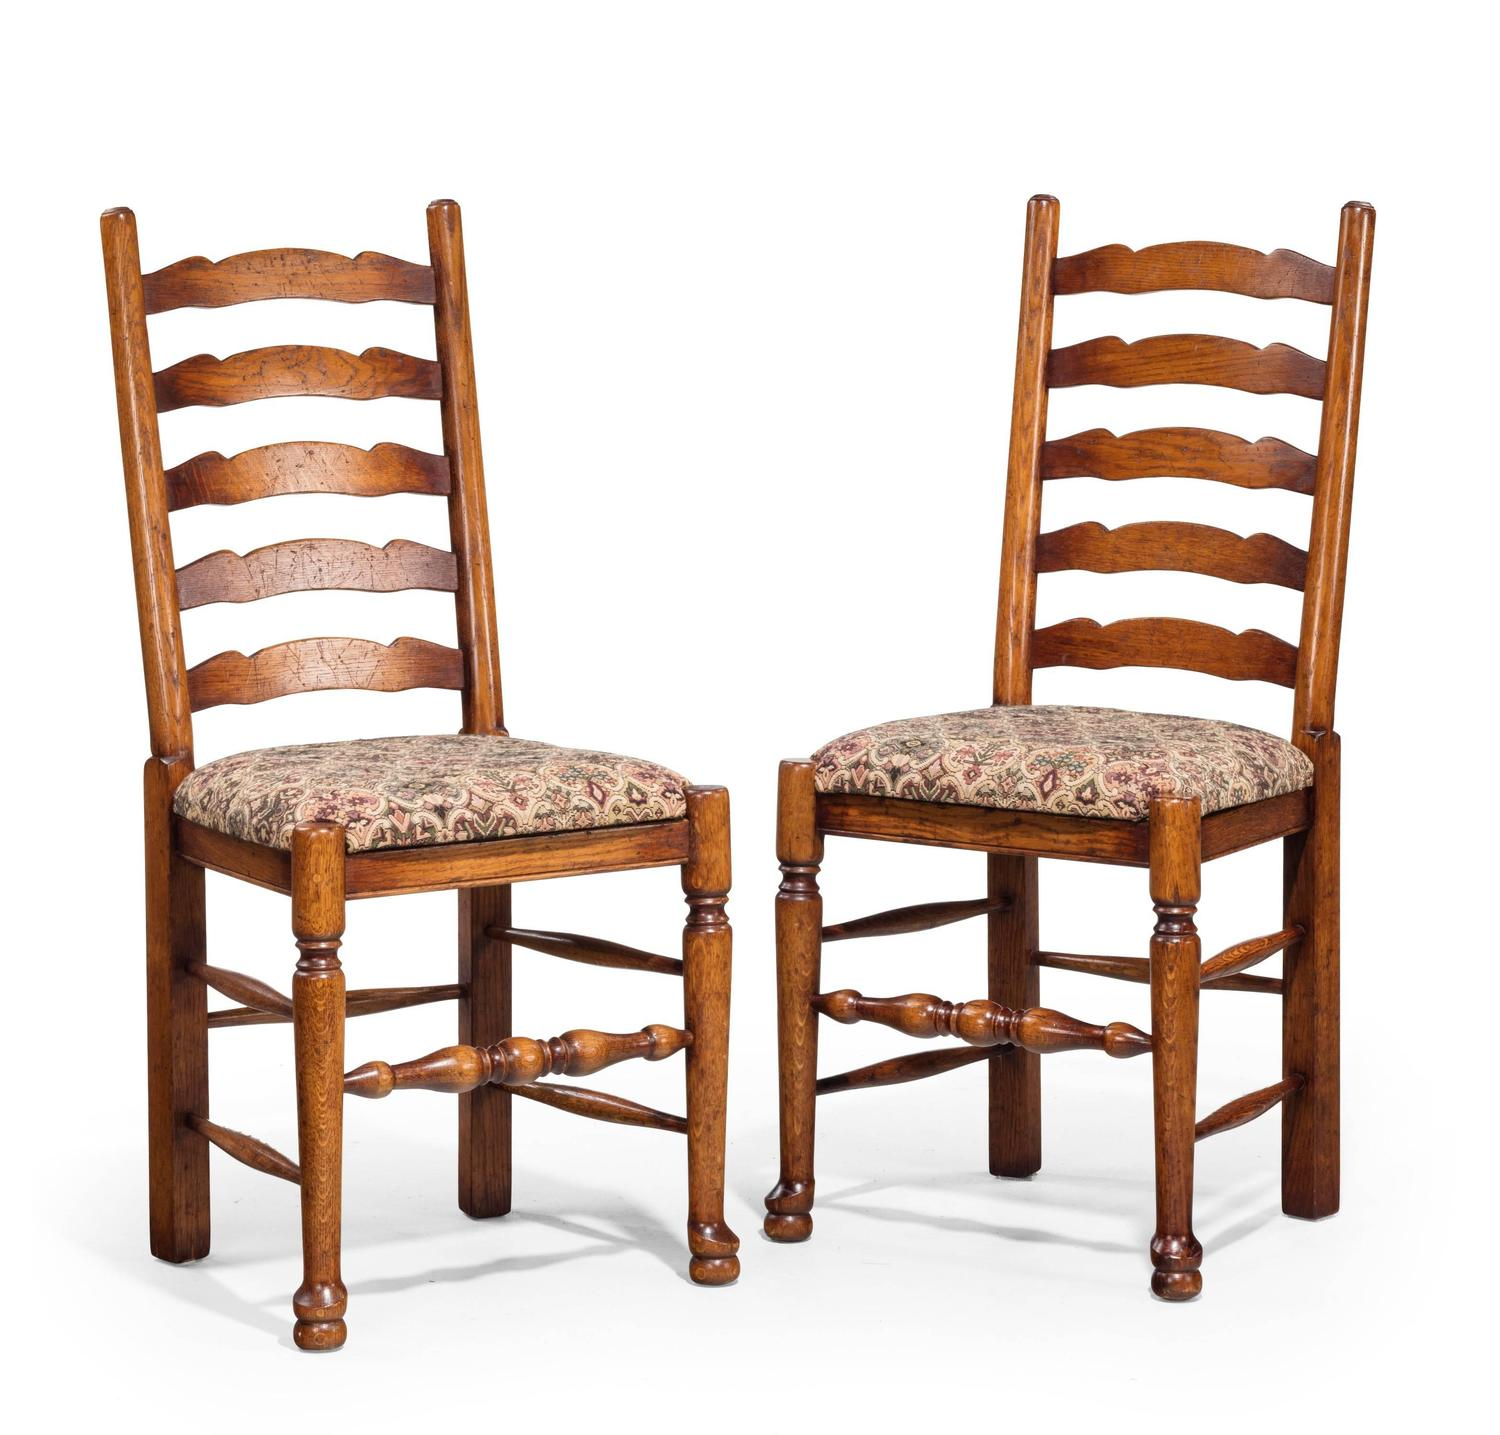 eight 20th century oak ladder back single chairs for sale at 1stdibs